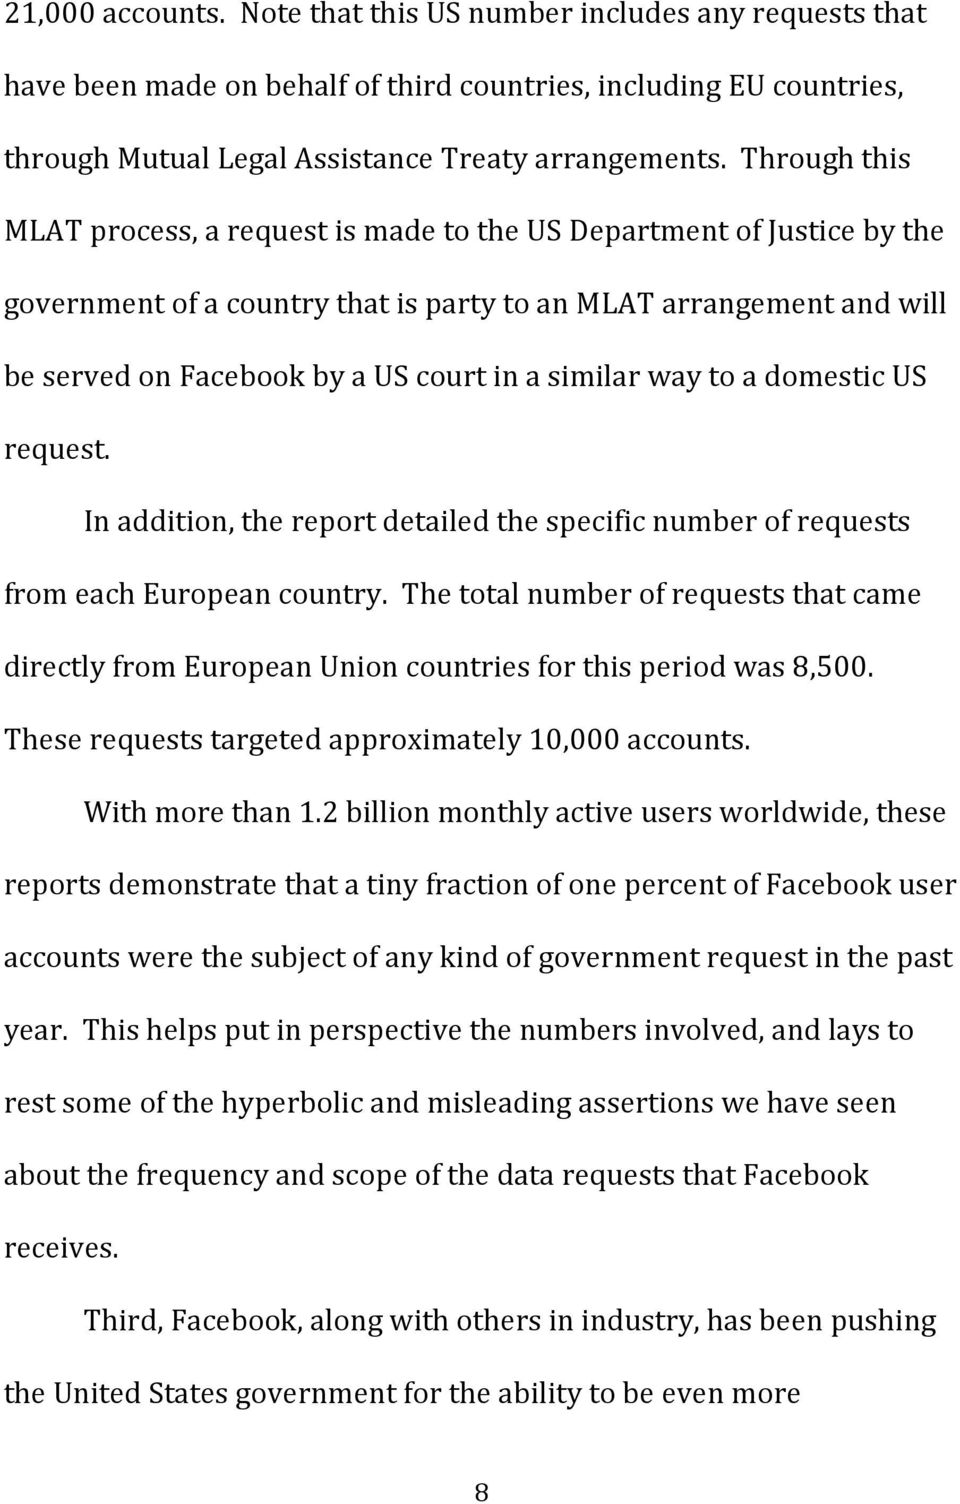 similar way to a domestic US request. In addition, the report detailed the specific number of requests from each European country.